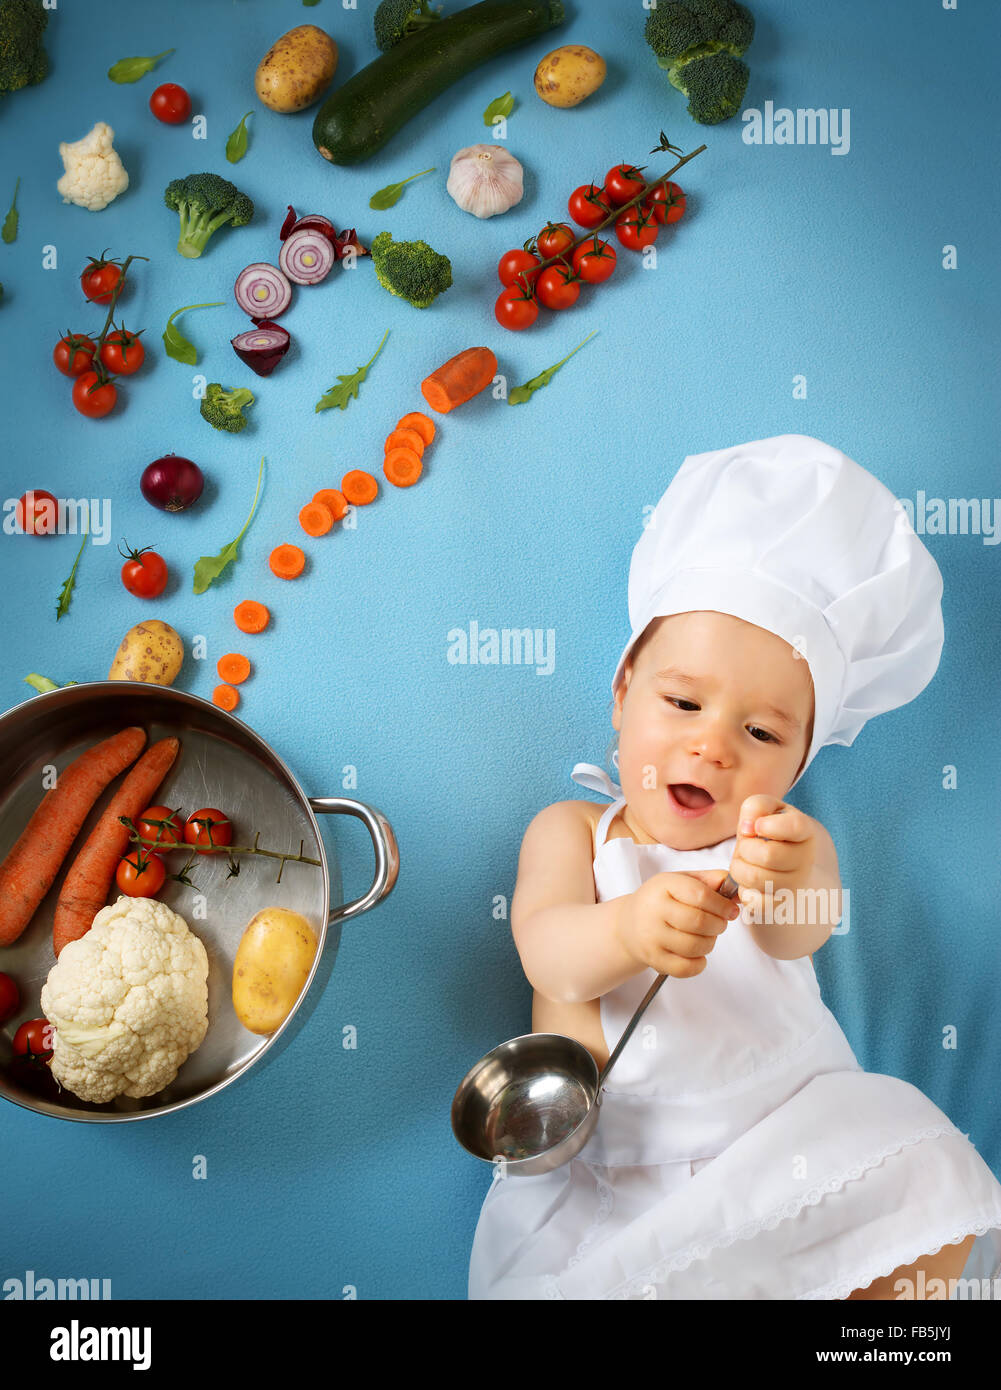 Baby boy in chef hat with cooking pan and vegetables - Stock Image